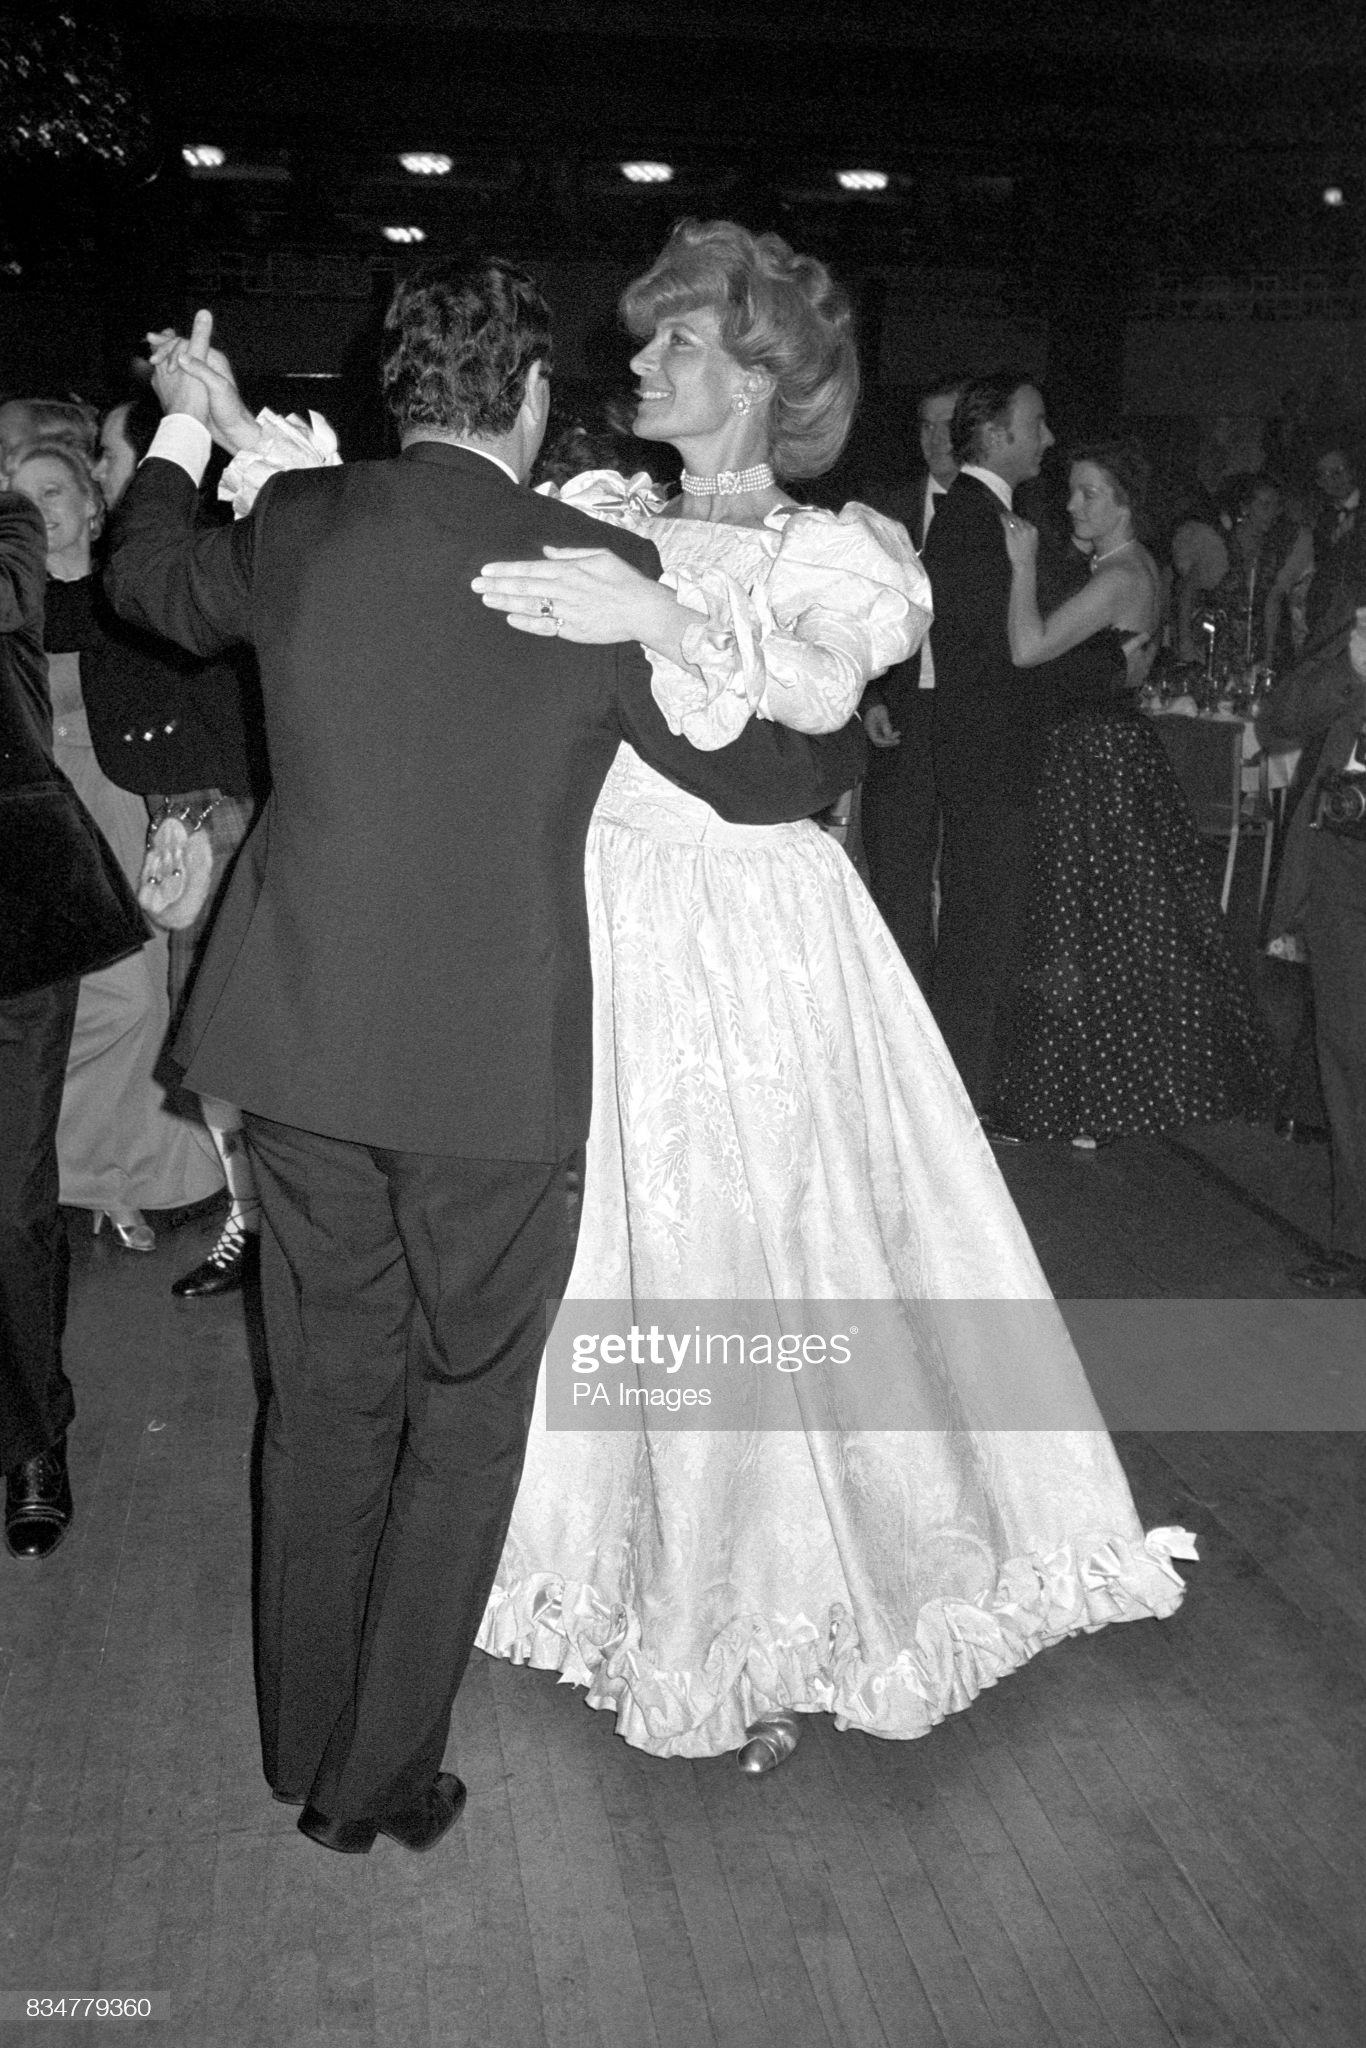 British Royalty - Princess Michael of Kent - London - 1983 : News Photo